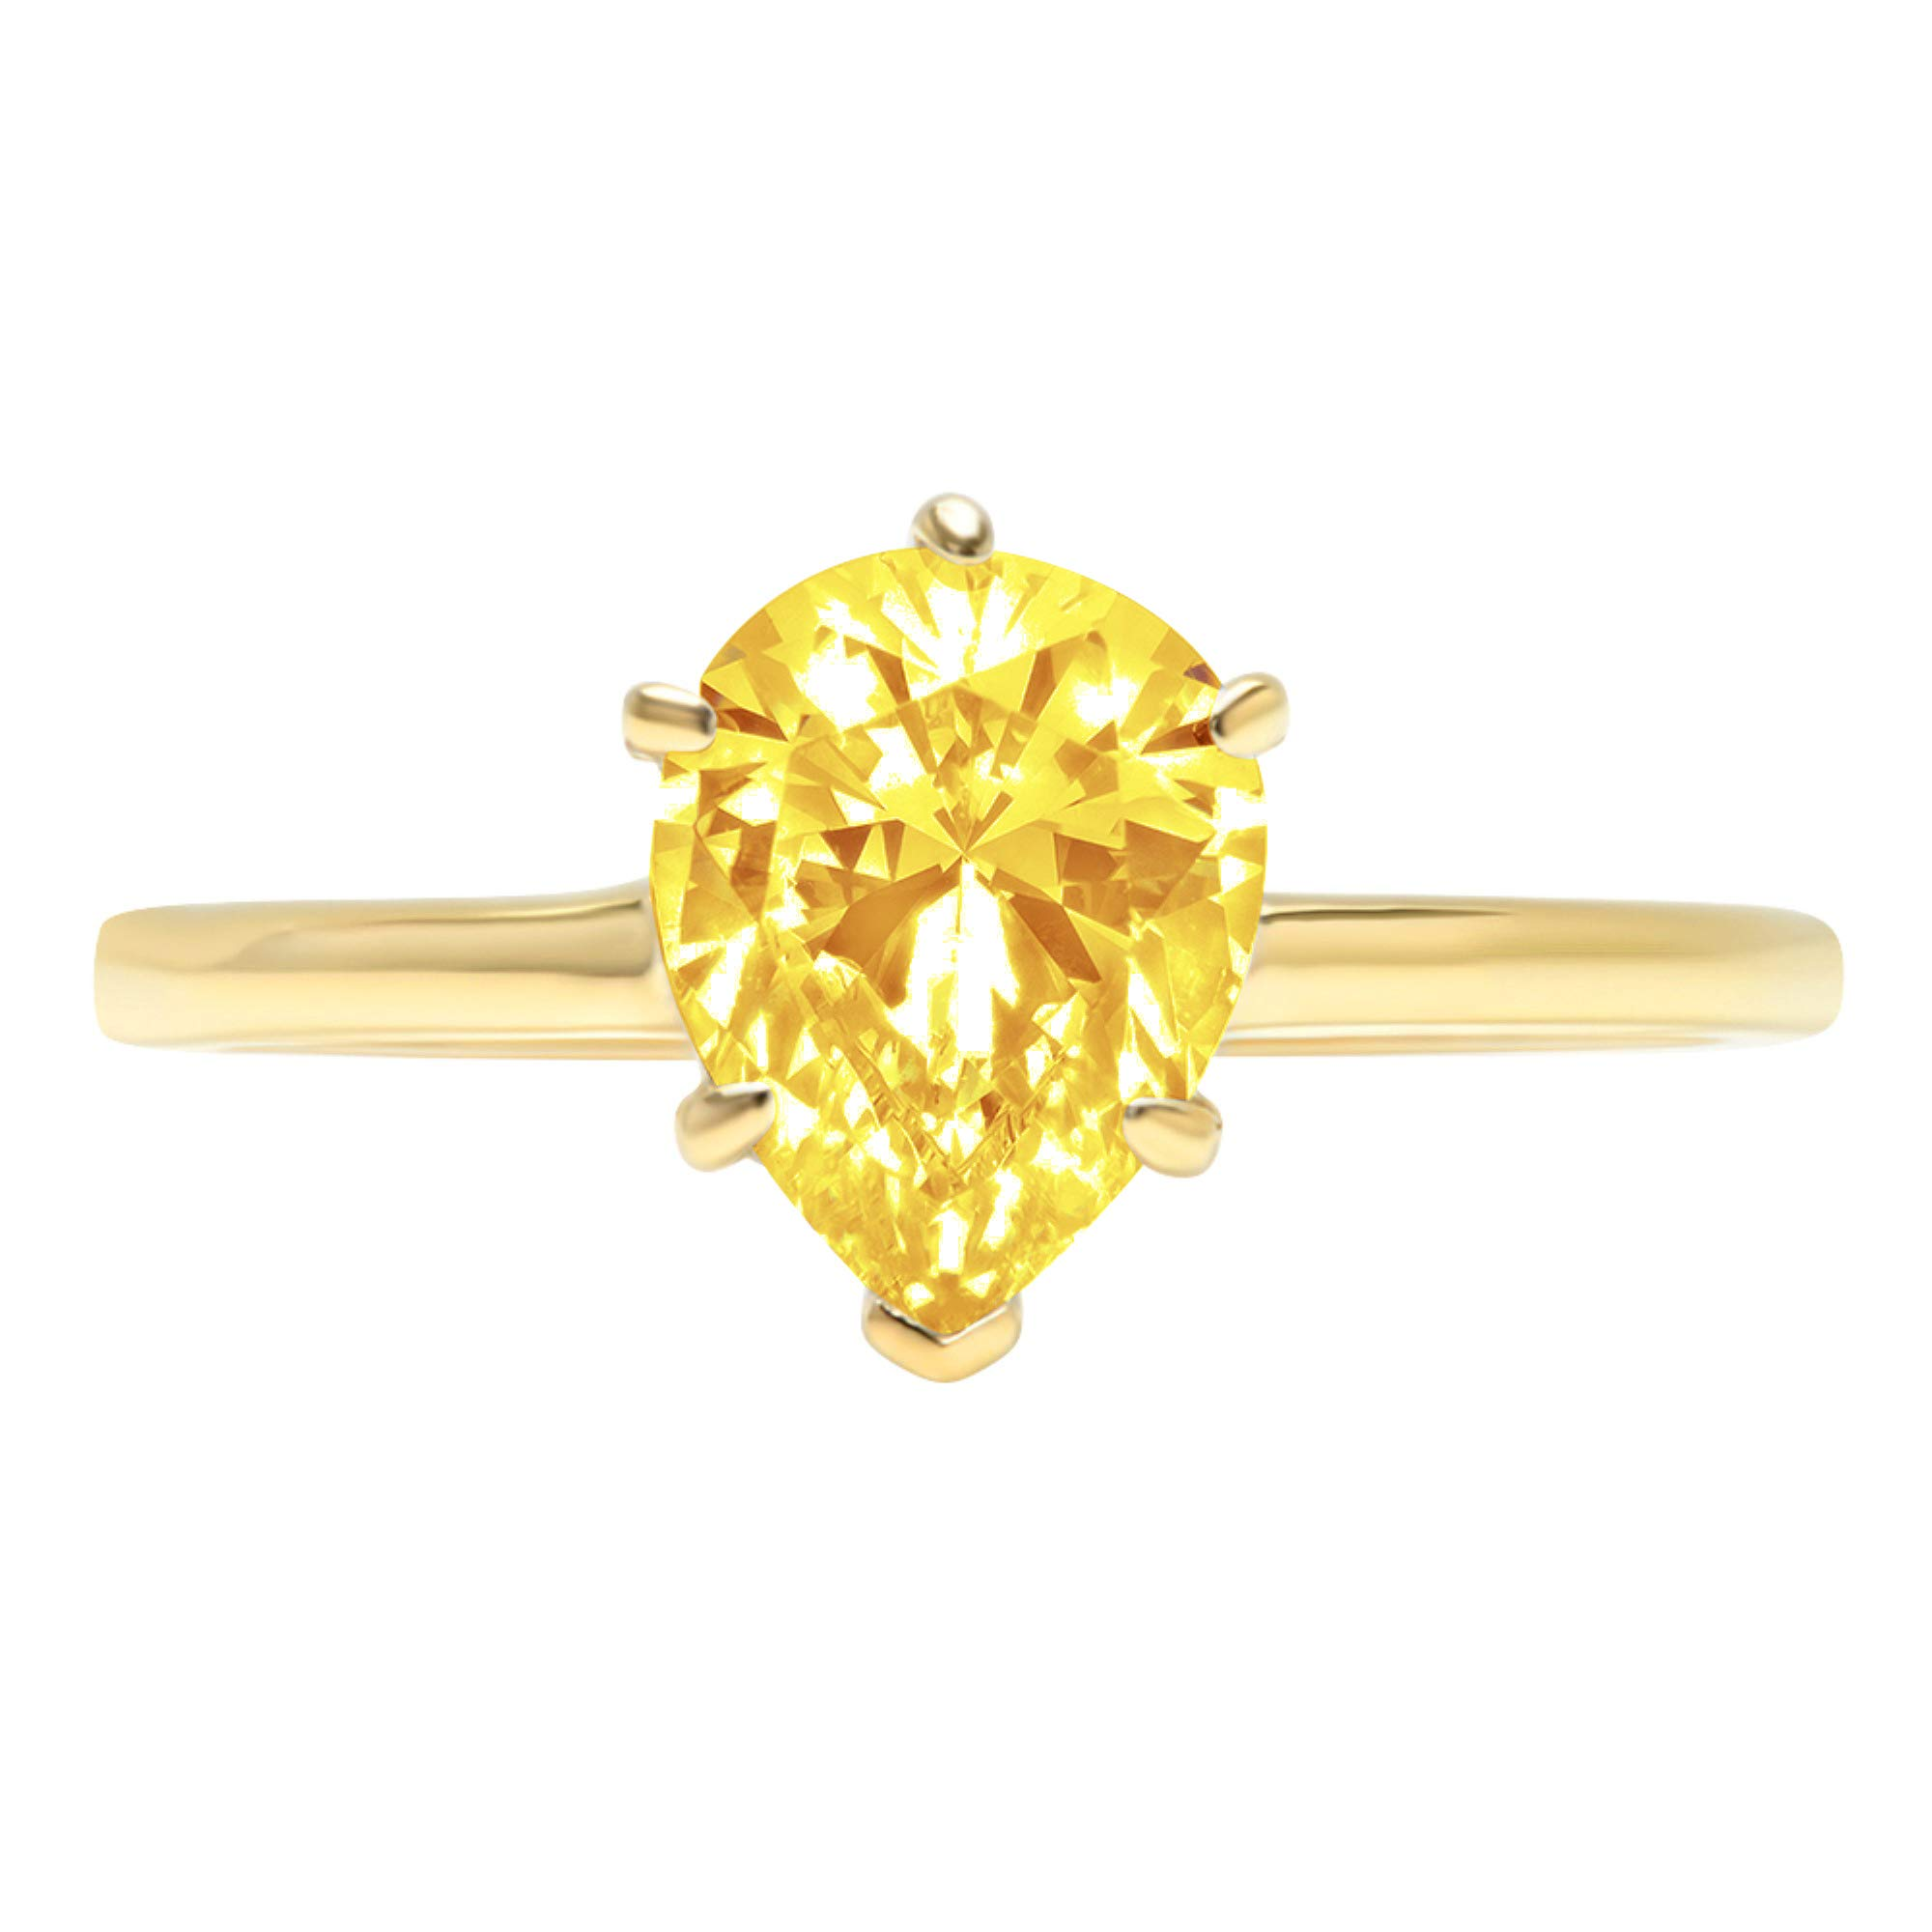 1.95ct Brilliant Pear Cut Solitaire Canary Yellow Simulated Diamond CZ Ideal VVS1 D 6-Prong Classic Designer Statement Ring Solid Real 14k Yellow Gold for Women